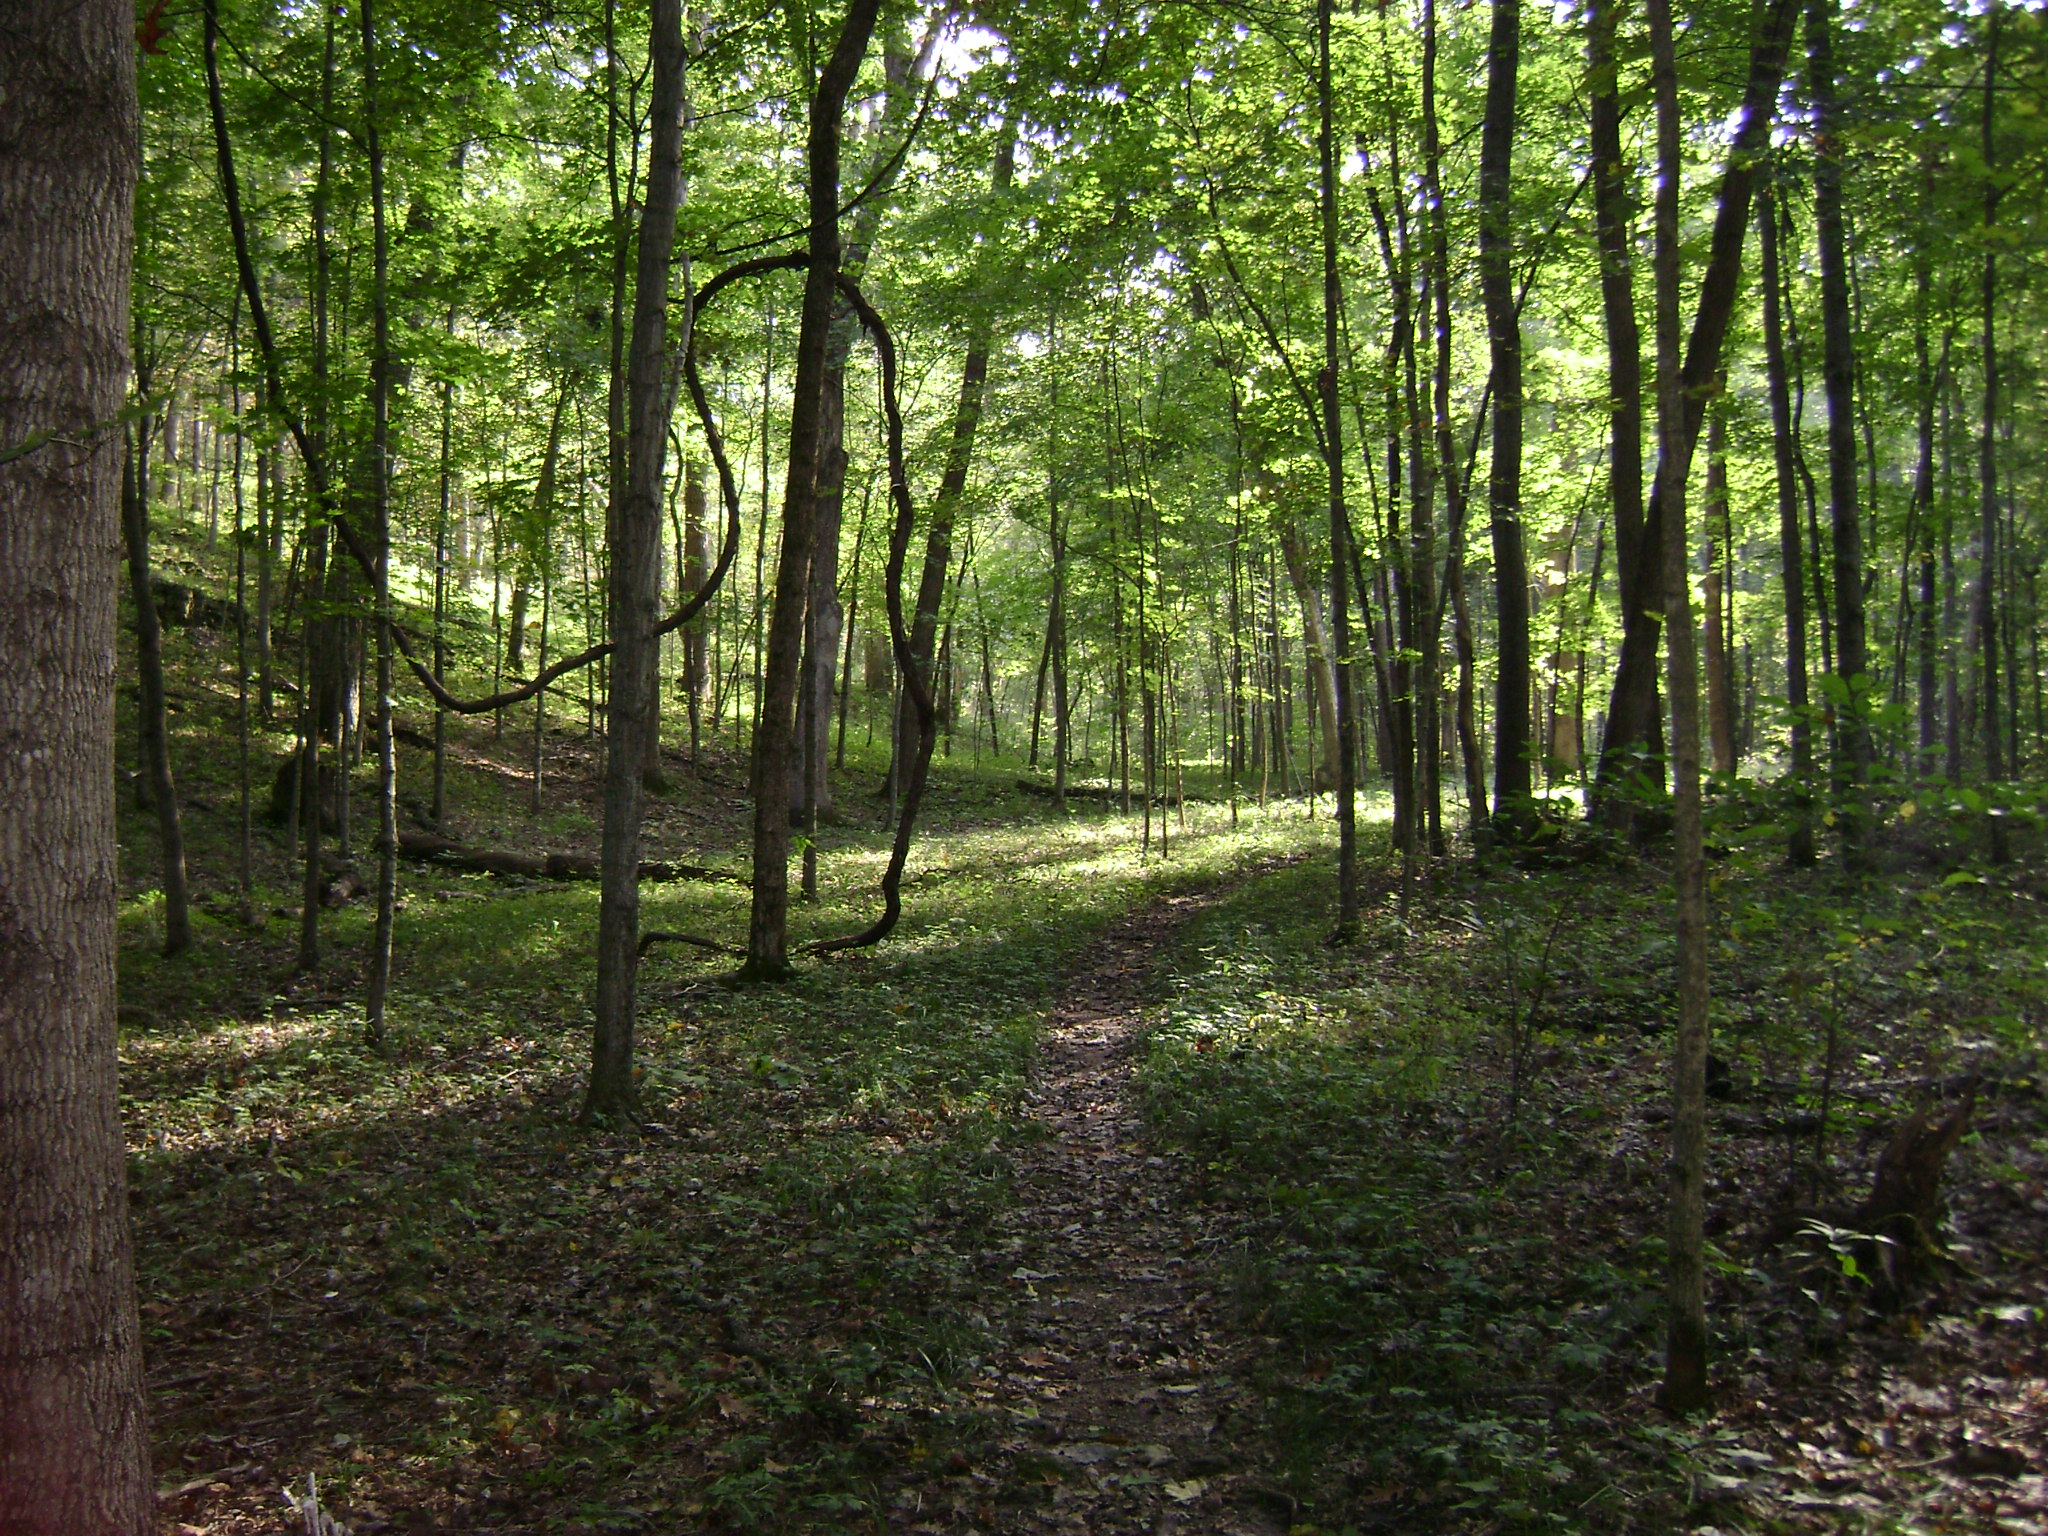 park trails missouri state parks wilderness trail the longest trail in the park gives users an opportunity to experience great geological and natural features